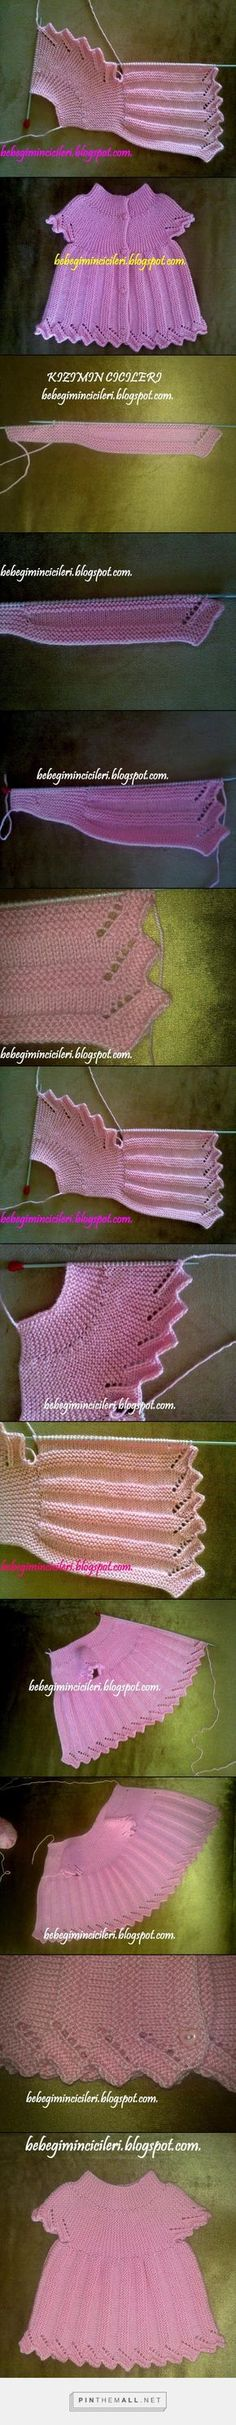 Short rows sideways baby vest, round yoke; step by step. Turkish Original. *General* notes: Cast on 75 st & divide into 3 wedge sections: collar (10 st; longest & fewest rows), yoke (20 st), body (45 st; shortest rows); 2::4::8. ~~ Alt. garter & stockinette stripes; YO inc at end of row, bind off 5 on 10th row, forming sawtooth lace. ~~ Work only collar & yoke sections to form armhole, work body separately, once armhole is finished join again for back ~~ KIZIMIN CICILERI: HEDIYELIK PEMBIS…